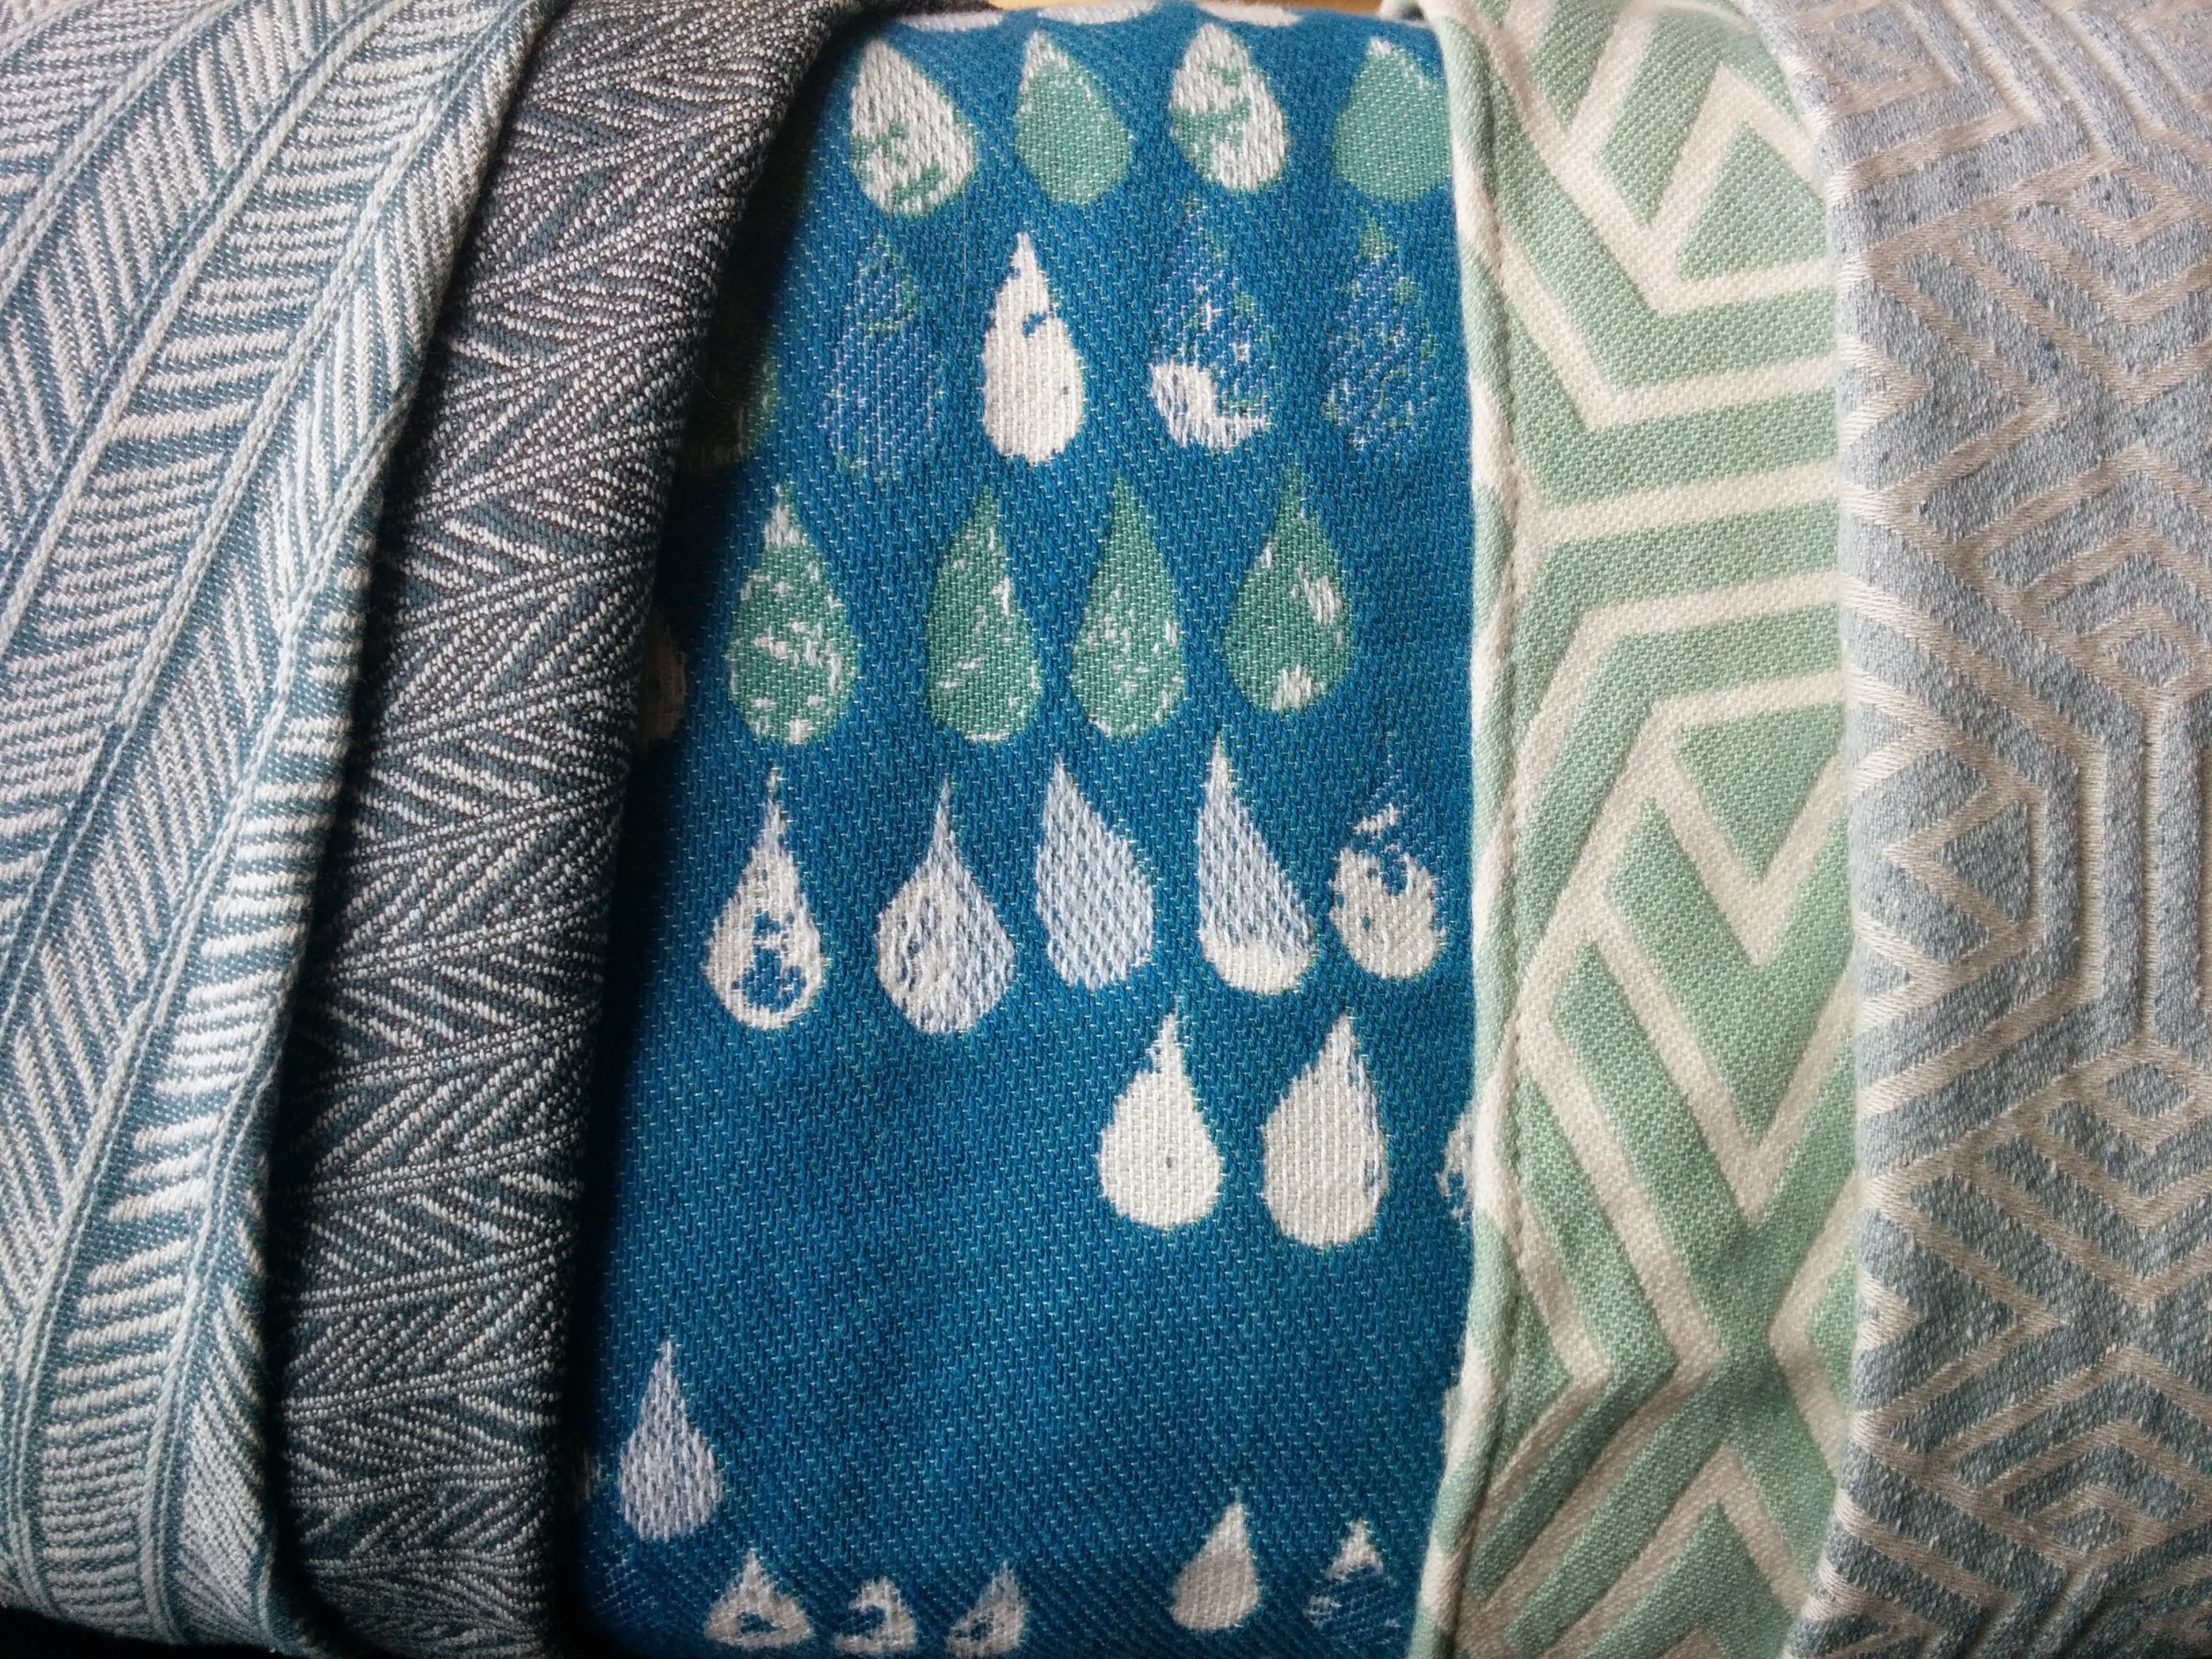 Left to Right:  Light Feathers, Dark Feathers, Droplets, Mint Geo, Study of Sky Geo